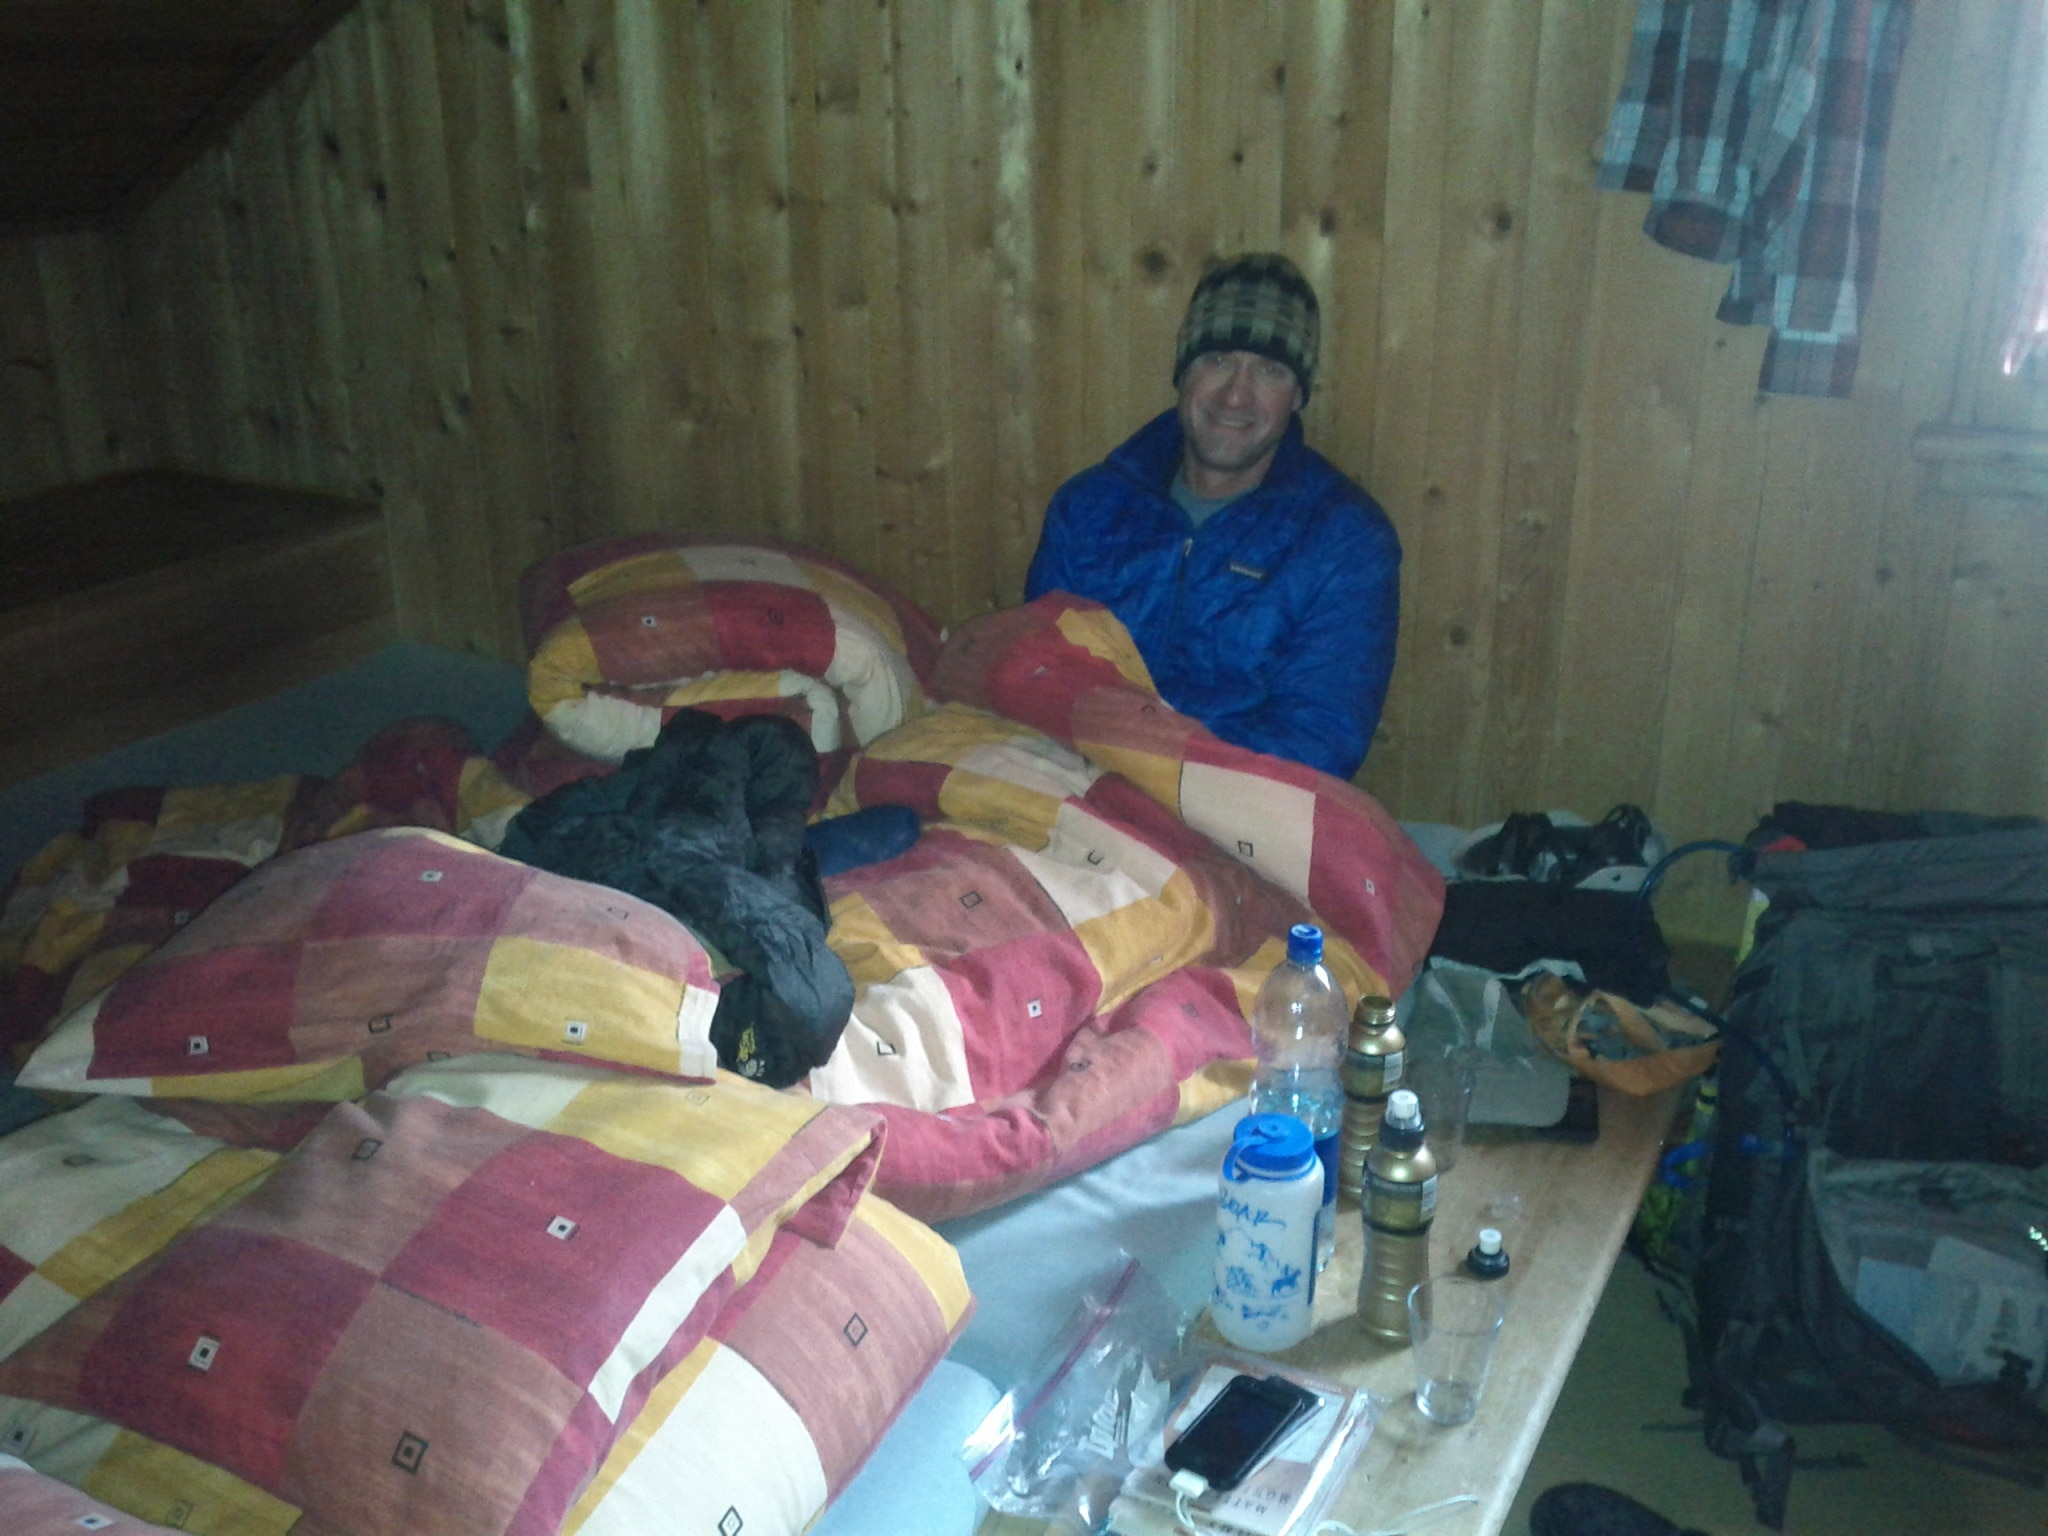 John Bird shivering and trying to rehydrate at the Schönbiel​hütte prior to descending to Zermatt.